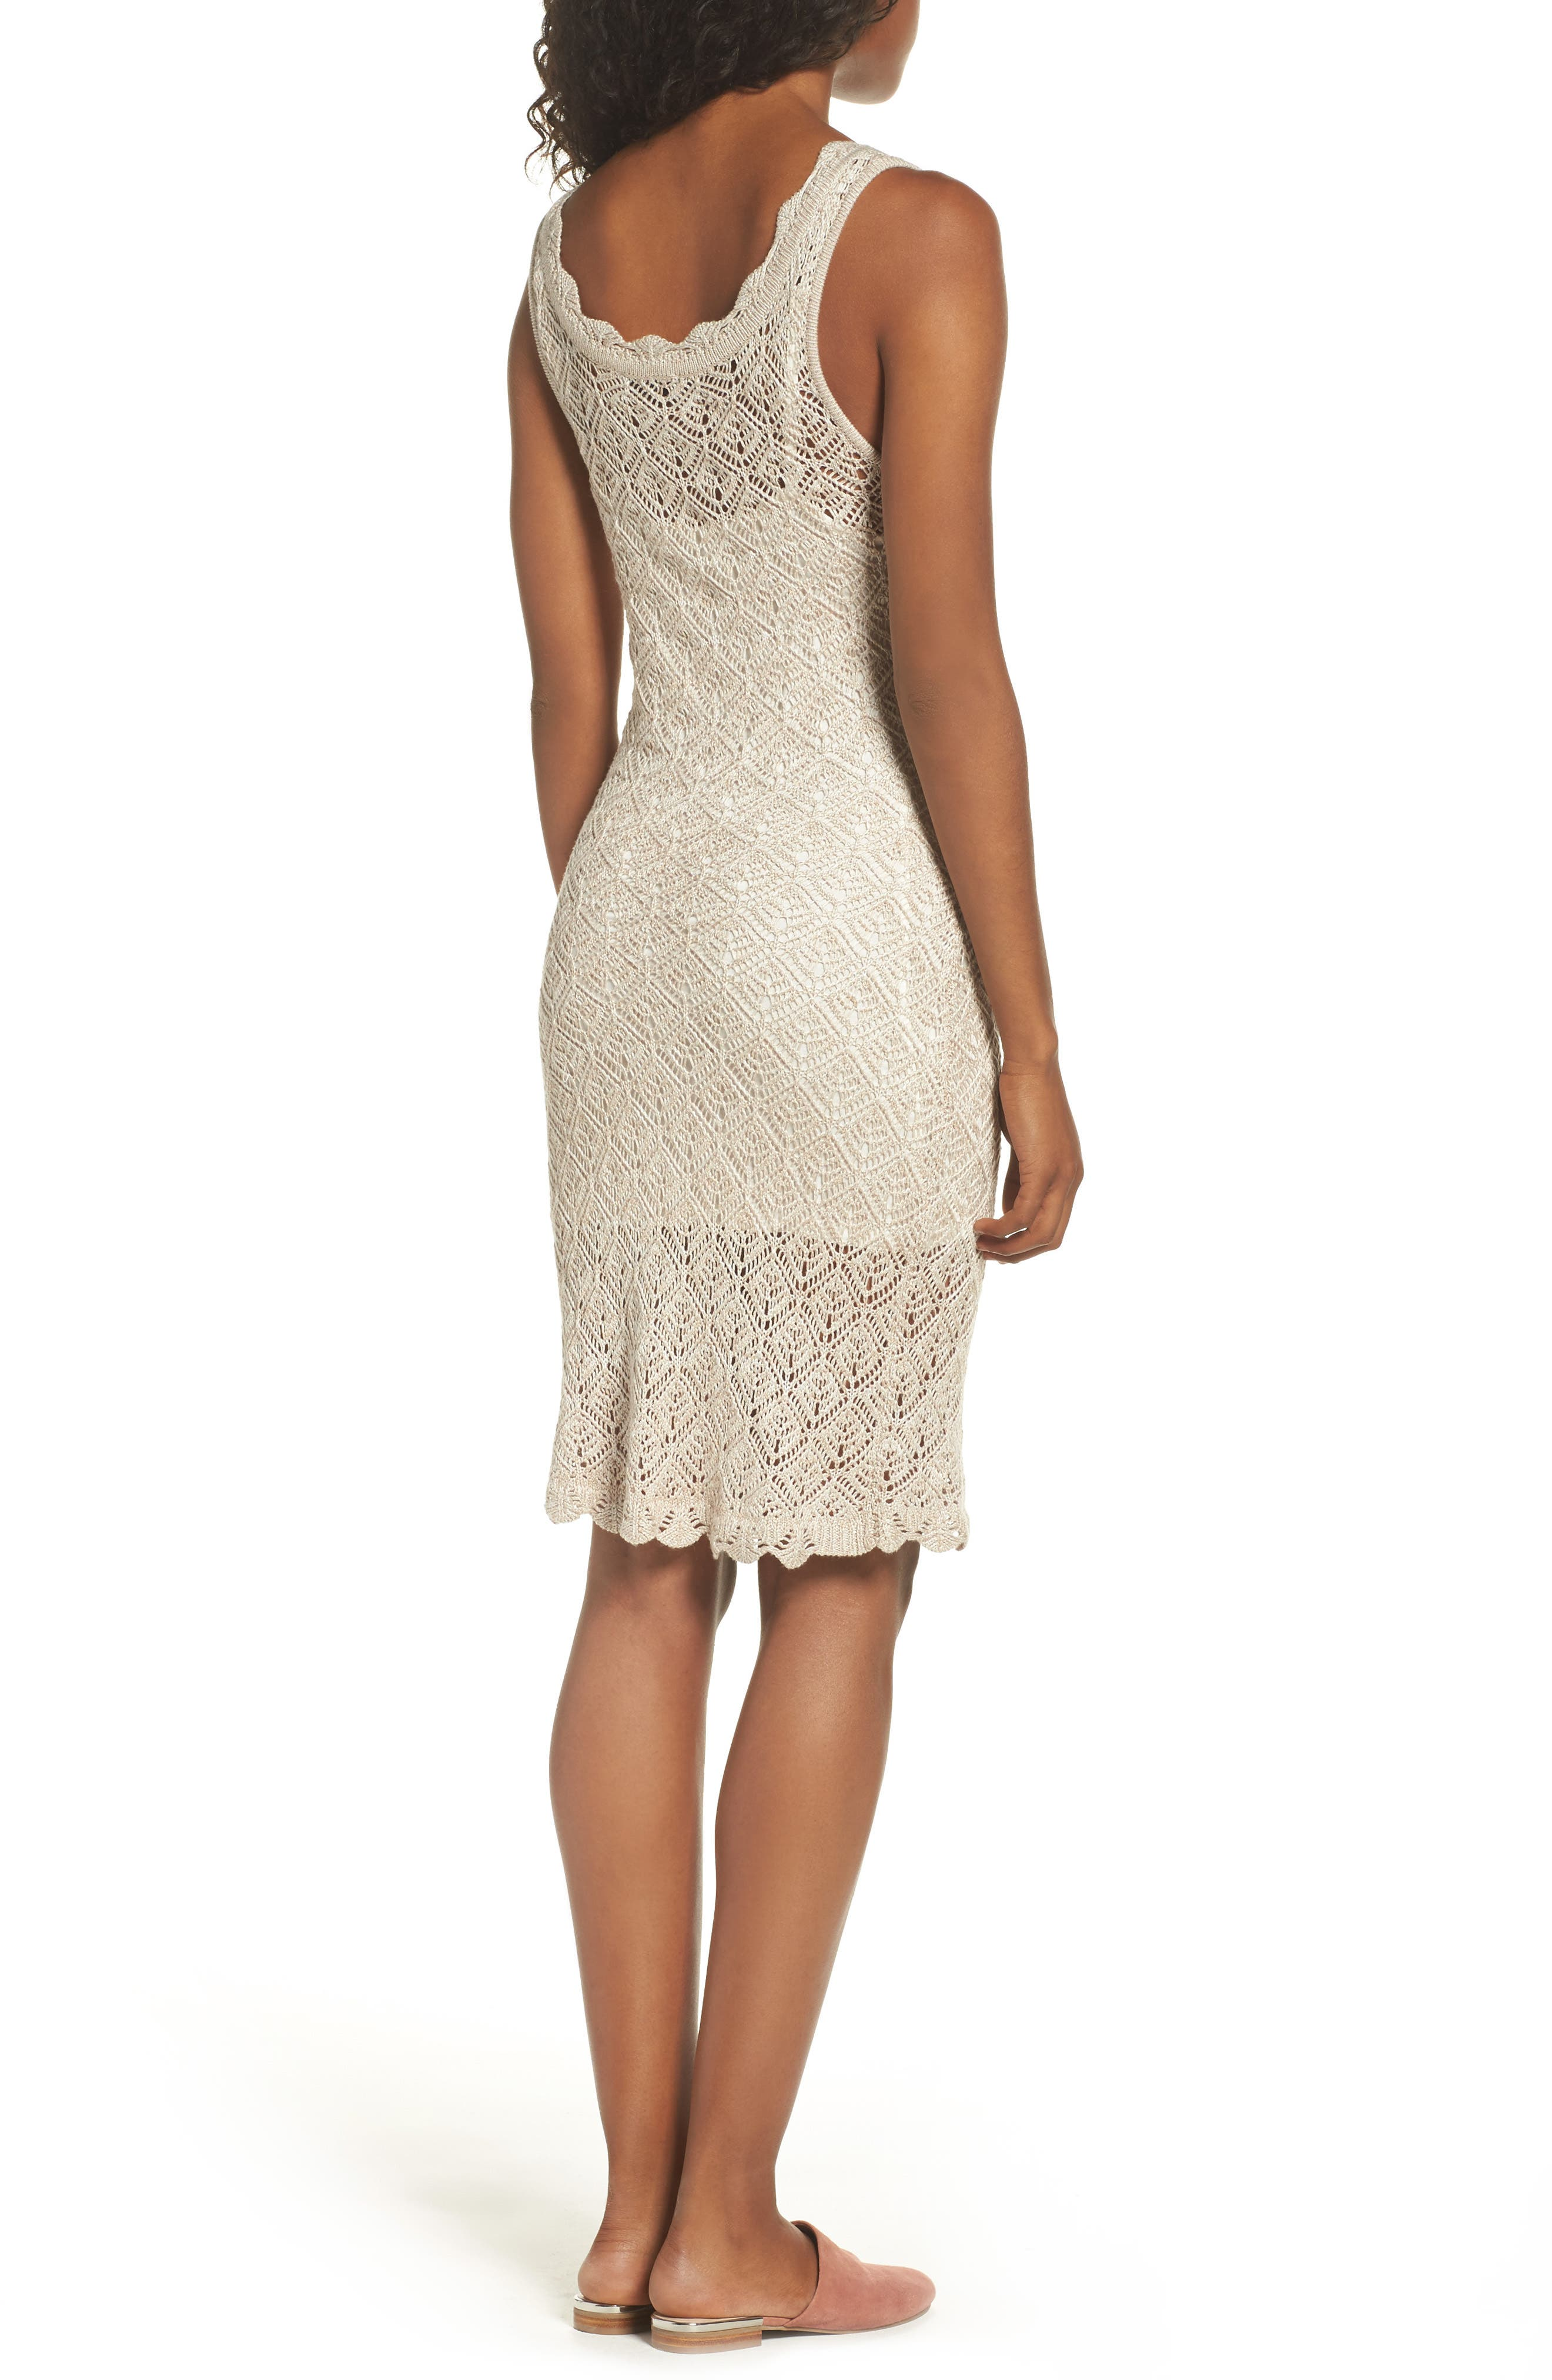 Picnic By The Lagoon Lace Dress,                             Alternate thumbnail 2, color,                             261